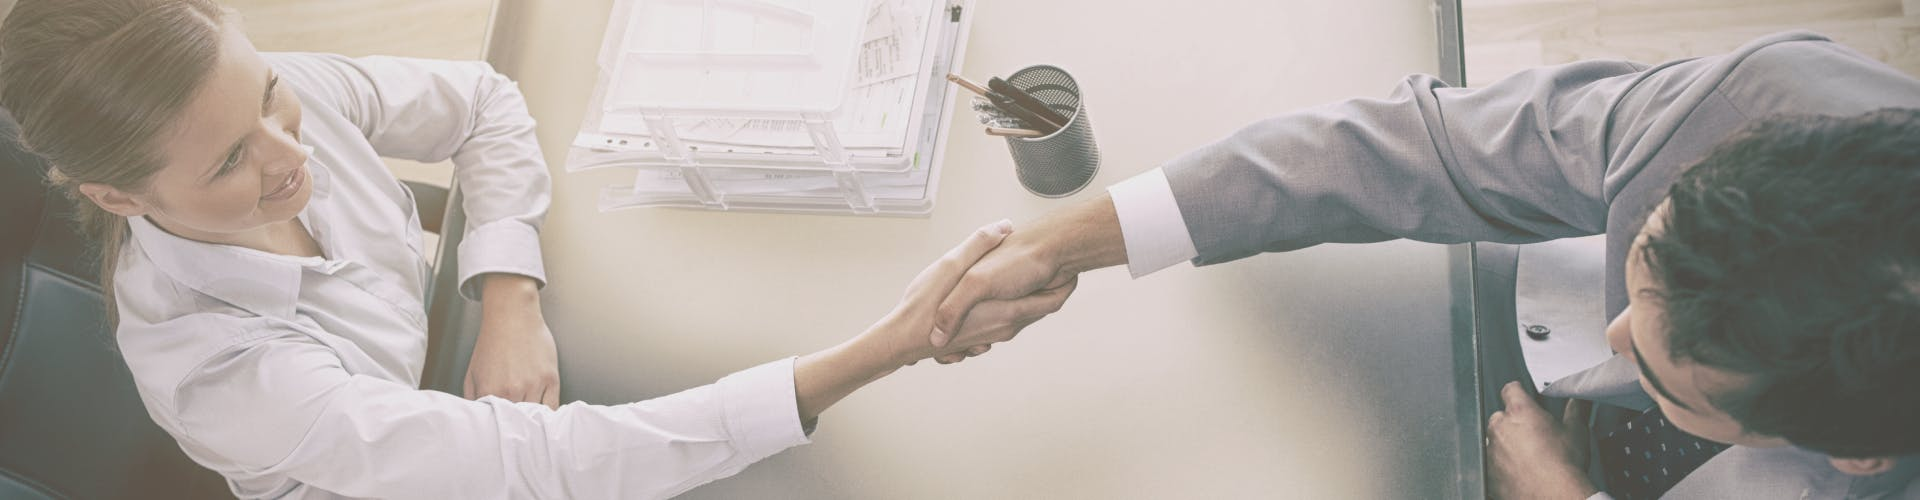 Graphics showing a handshake between the client and the company